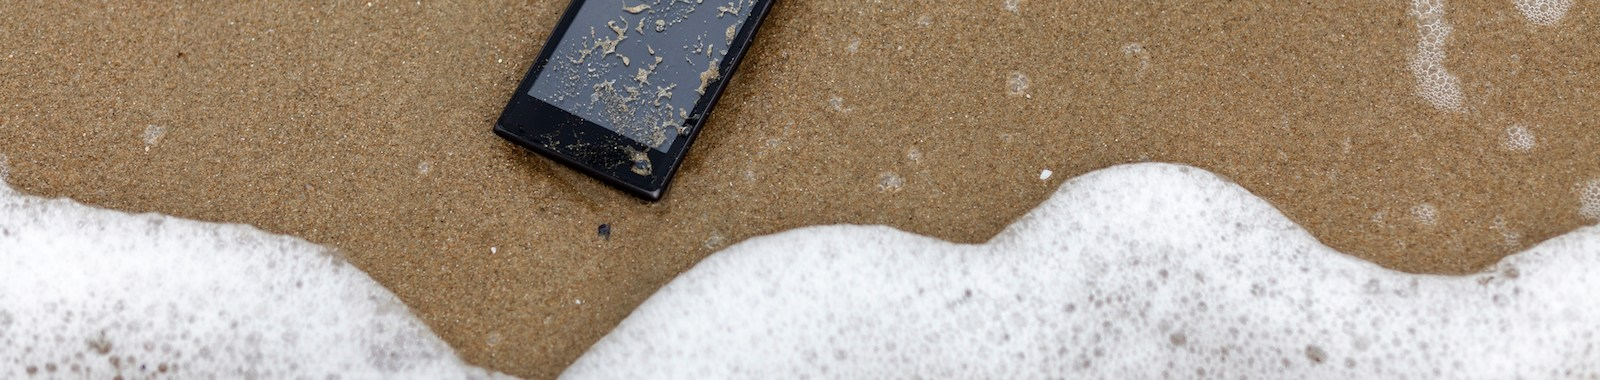 Mobile phone fallen and lost in the sea,  thrown out by a sea wave on the beach